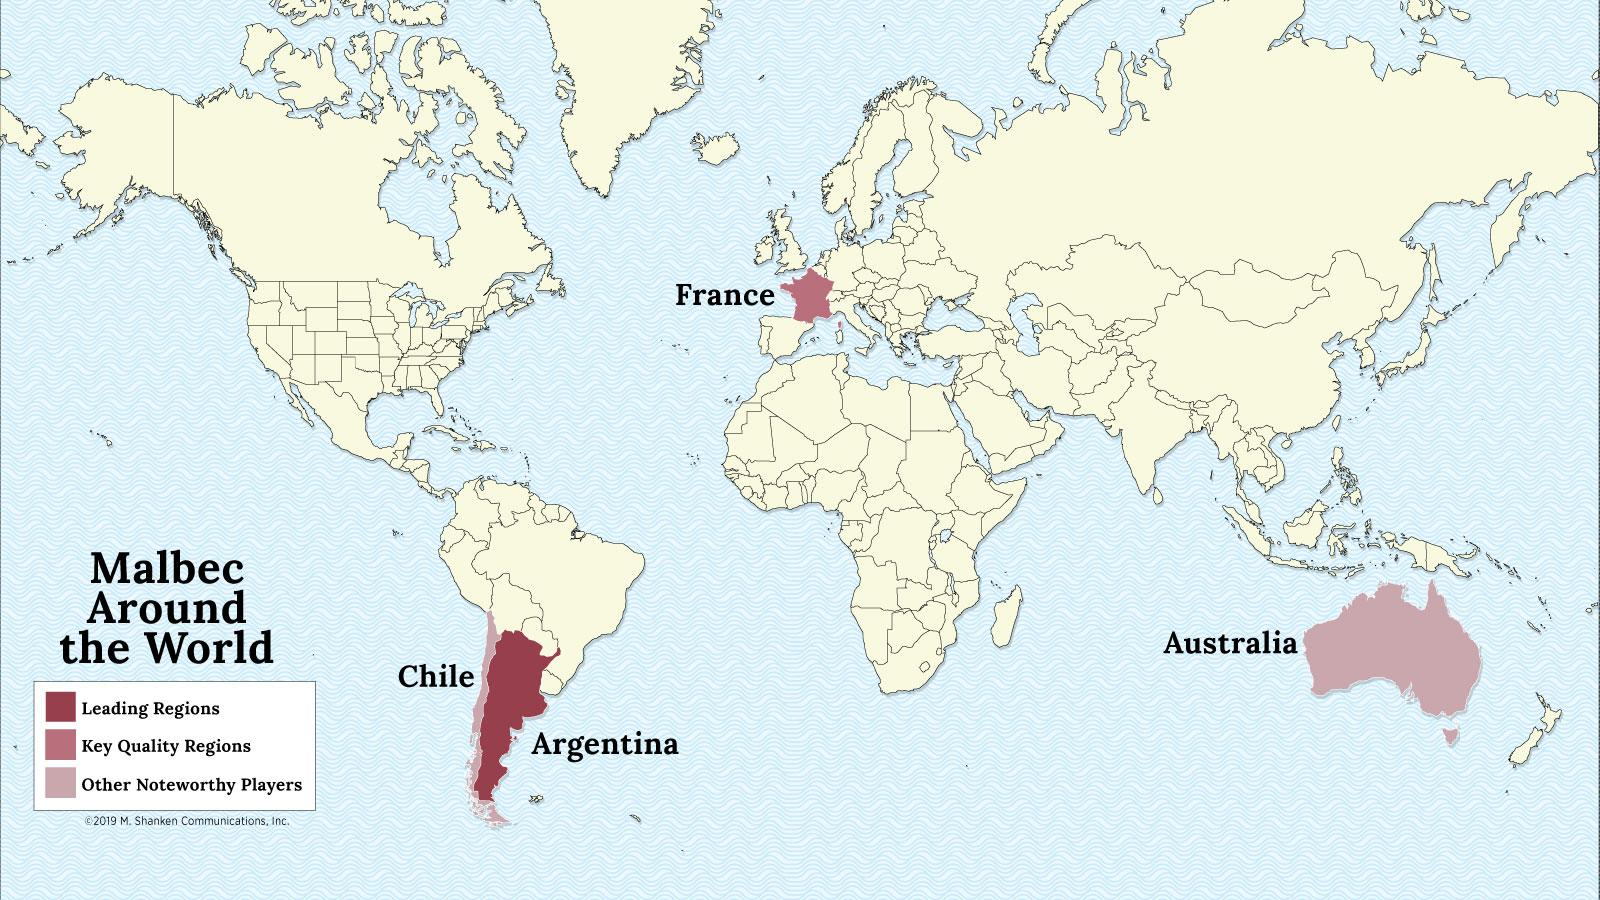 A map of the world with Argentina, France, Chile and Australia highlighted